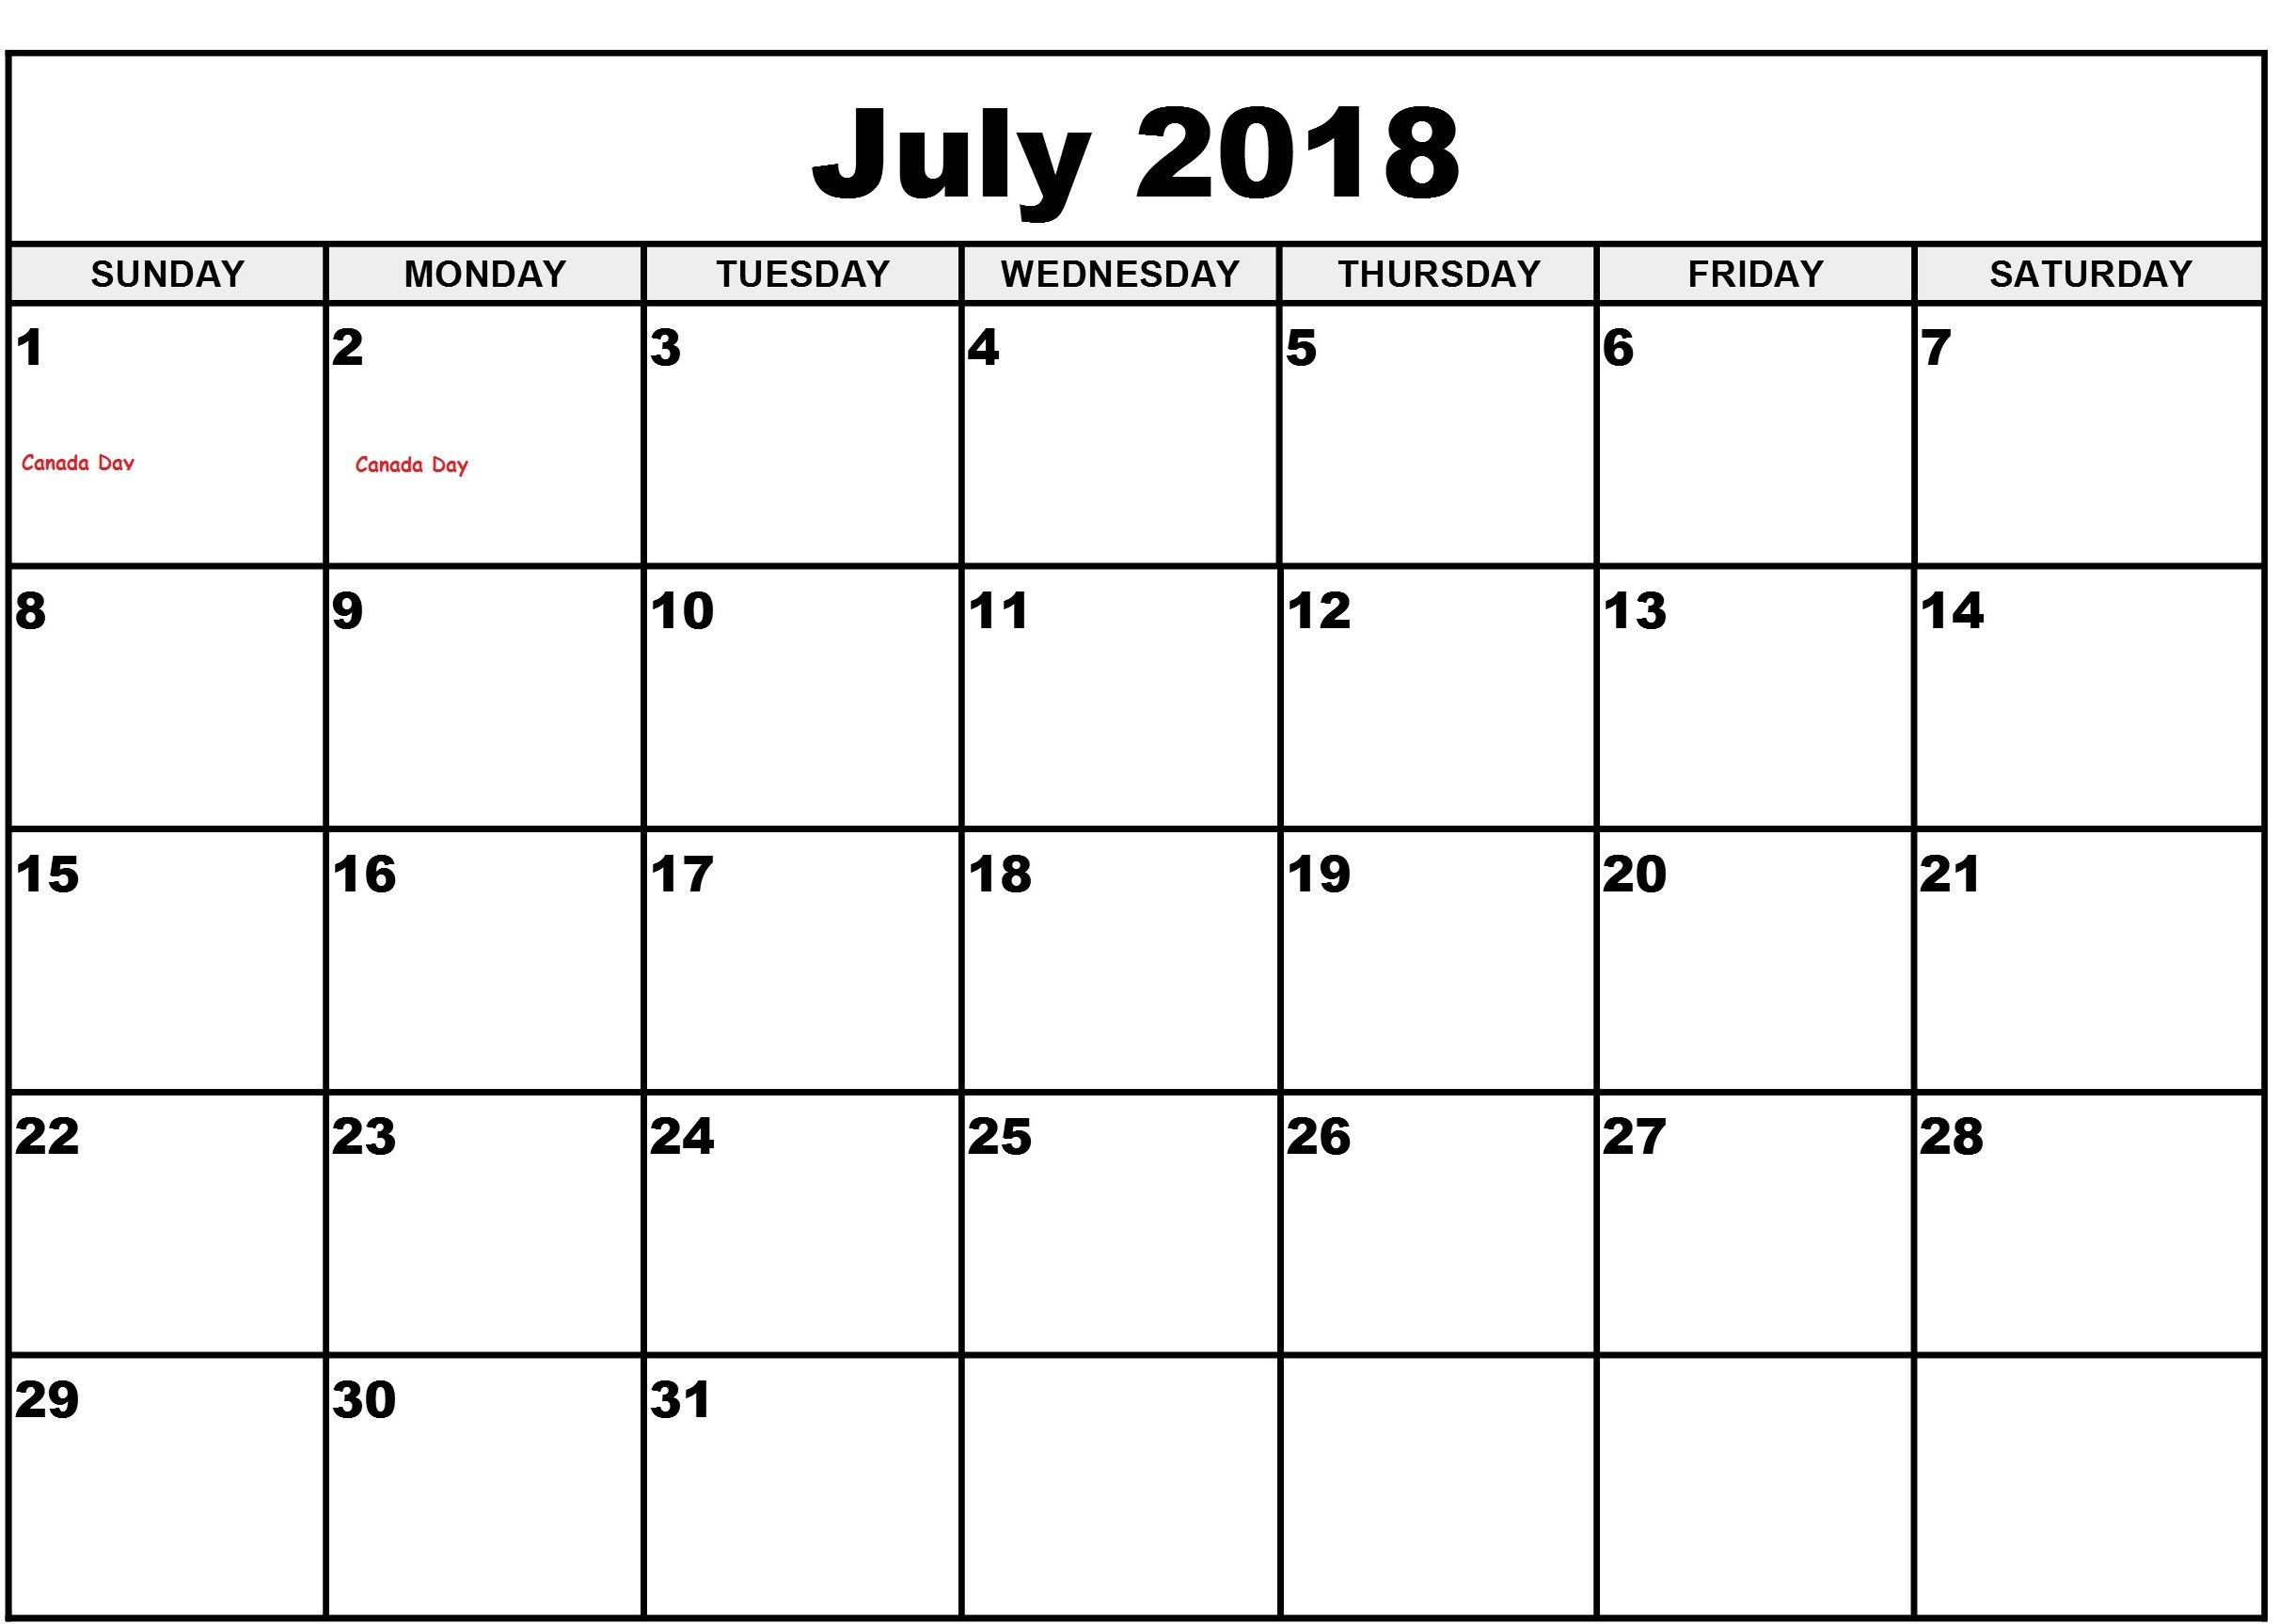 July 2018 Calendar With Time Slots Template Calendar